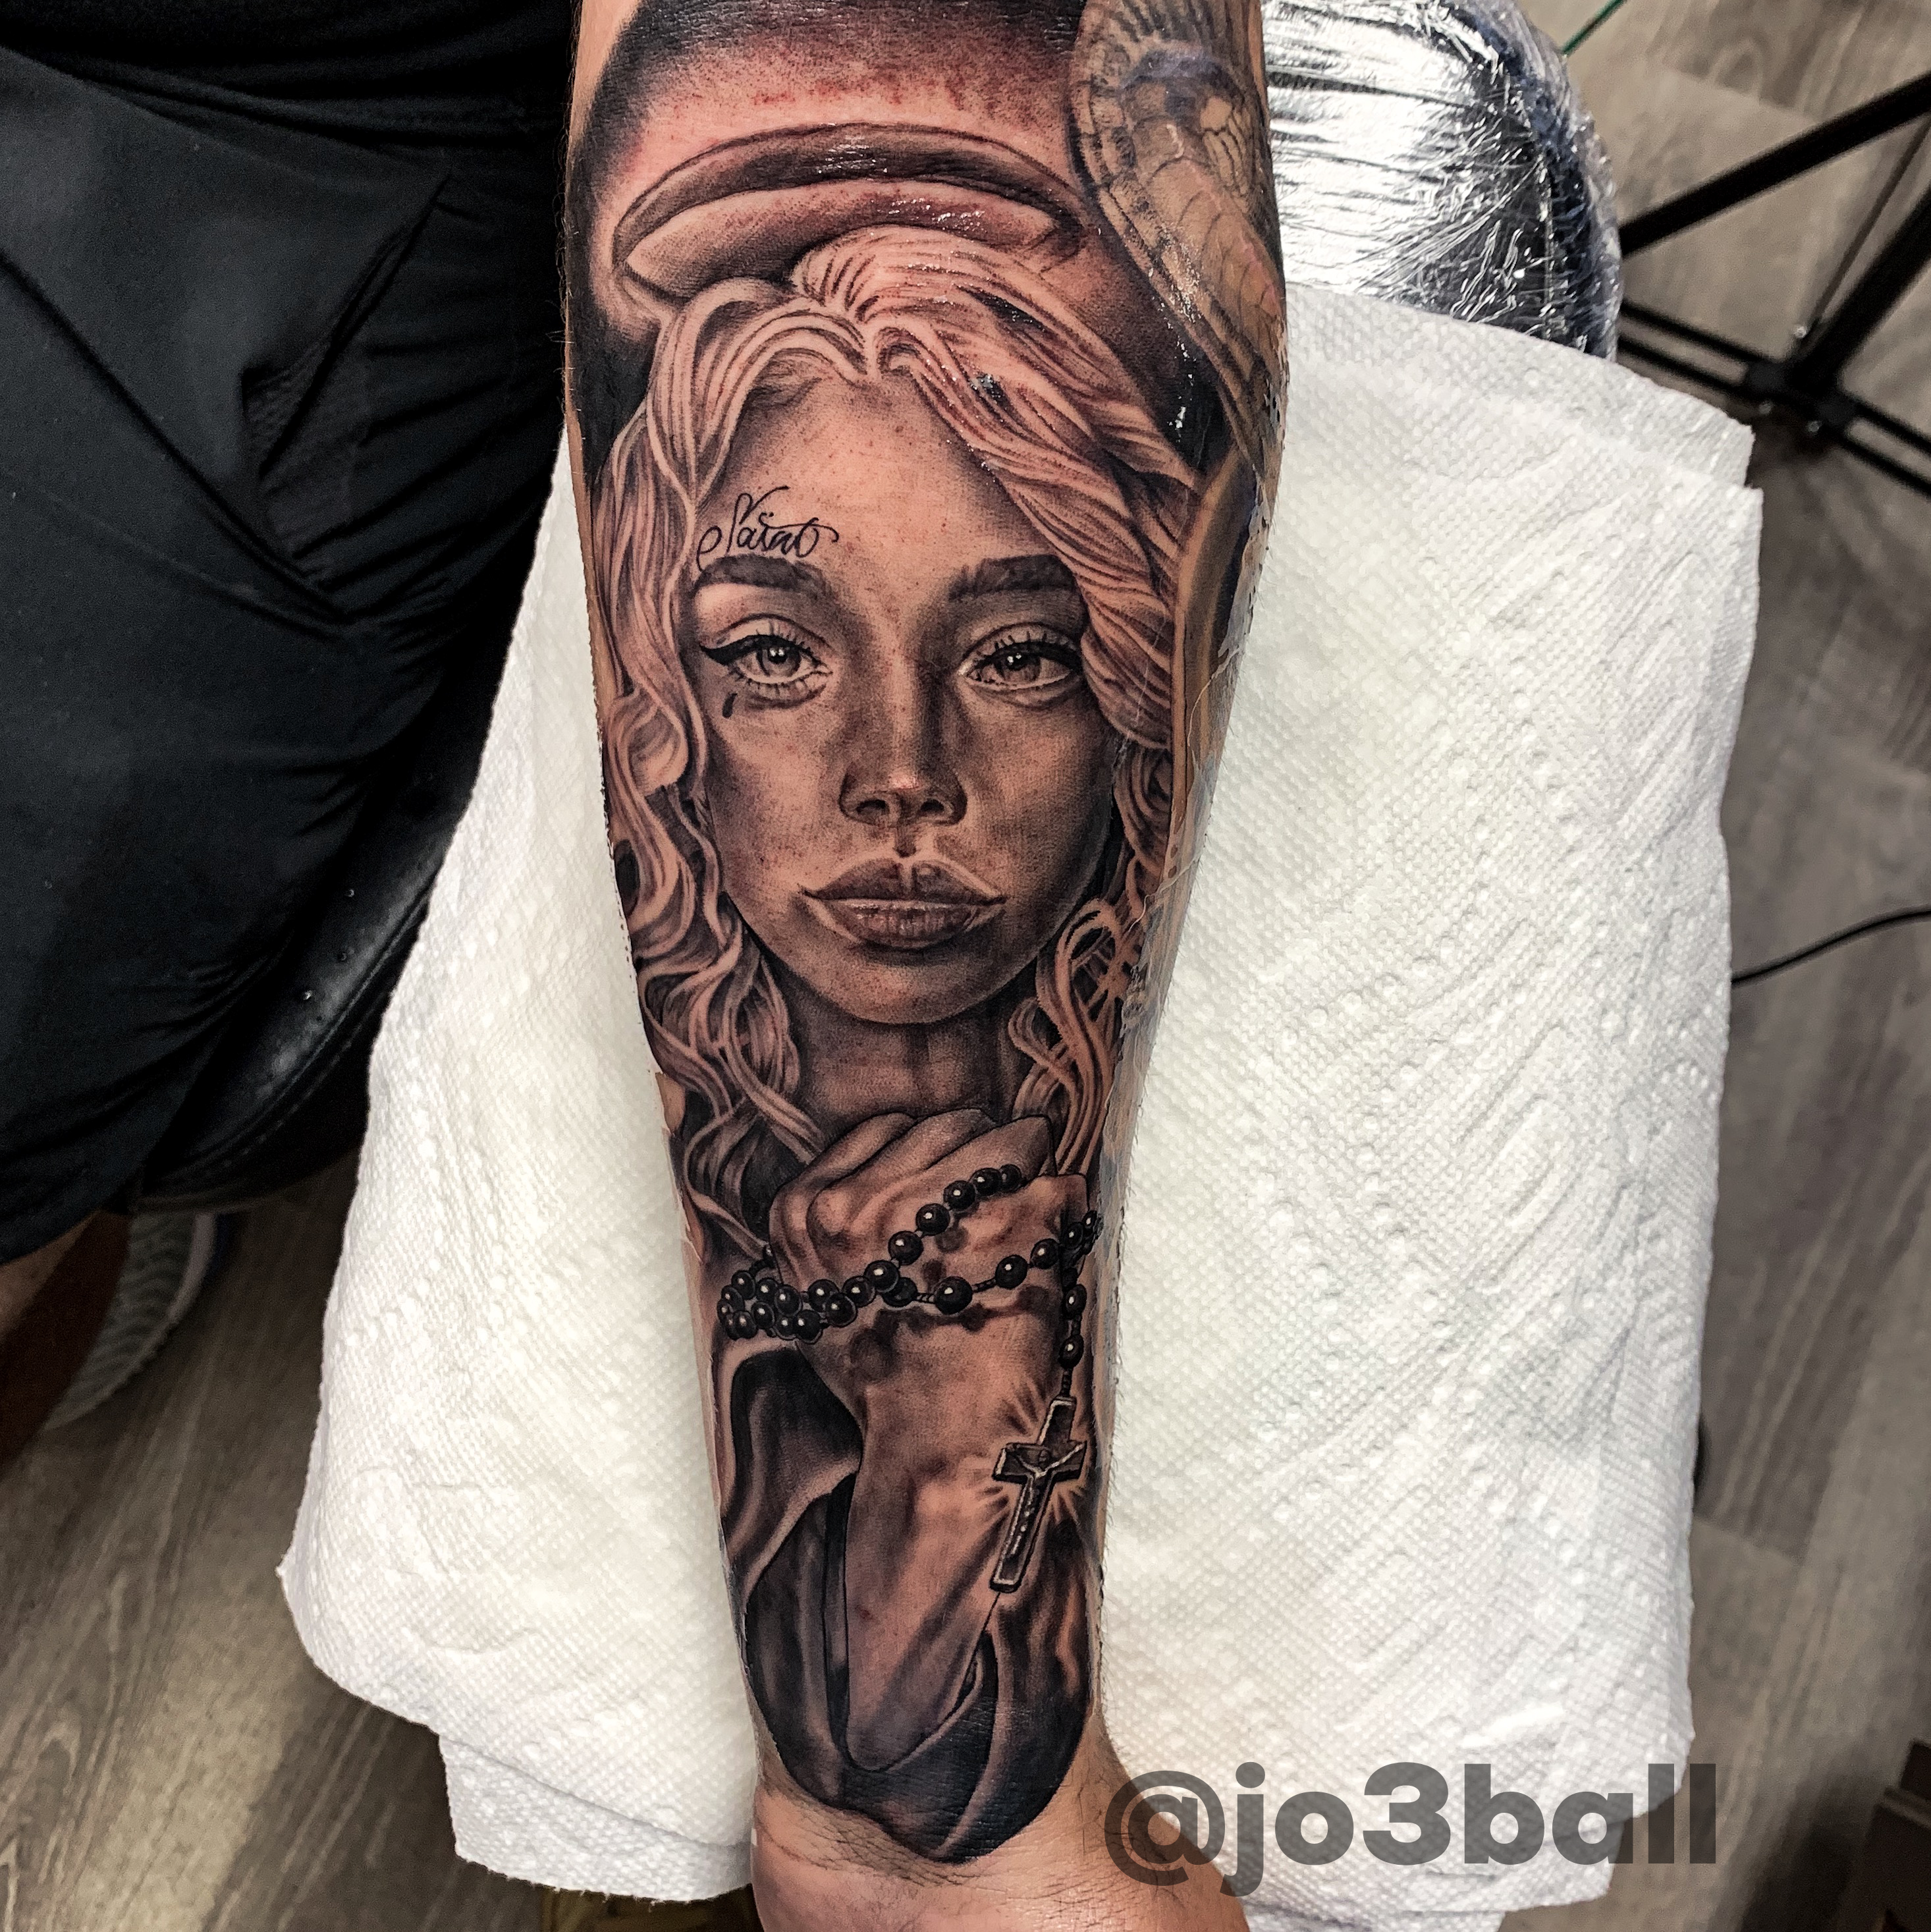 Girl Angel Tattoo  #rosarybeadtattoo Black and Grey Portrait of Angel Holding Rosary beads Tattoo #rosarybeadtattoo